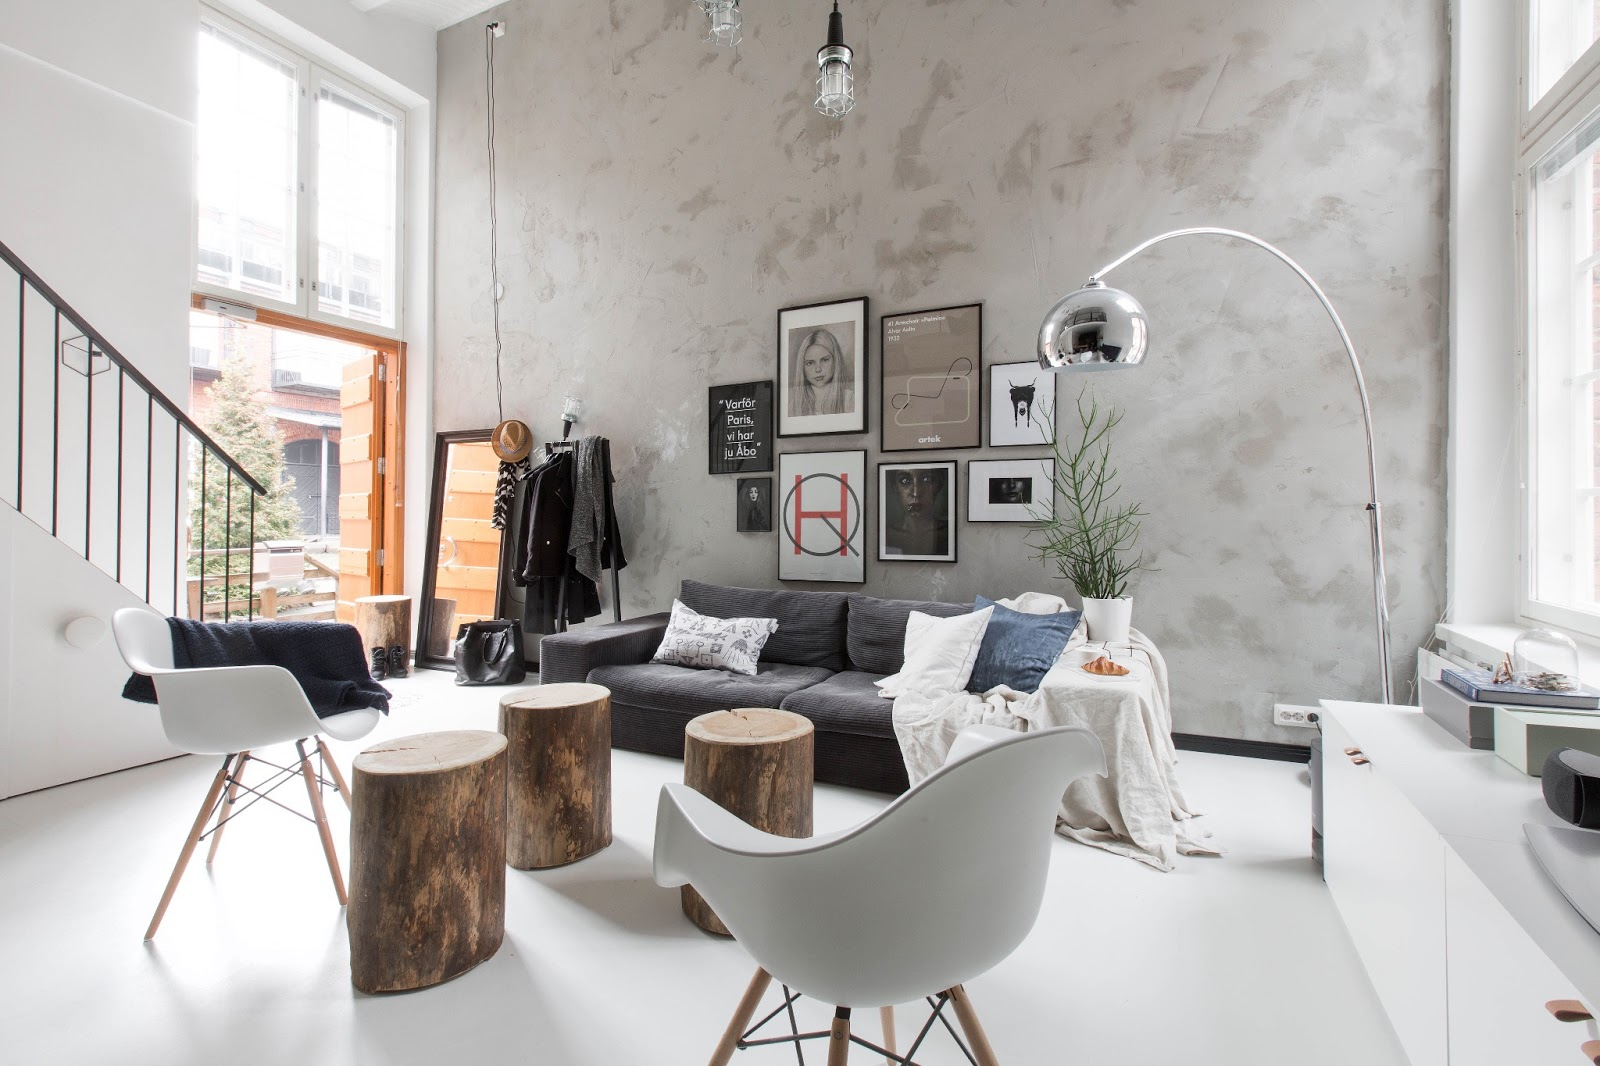 An urban village scandinavian loft inspiration - Rangement salon design ...